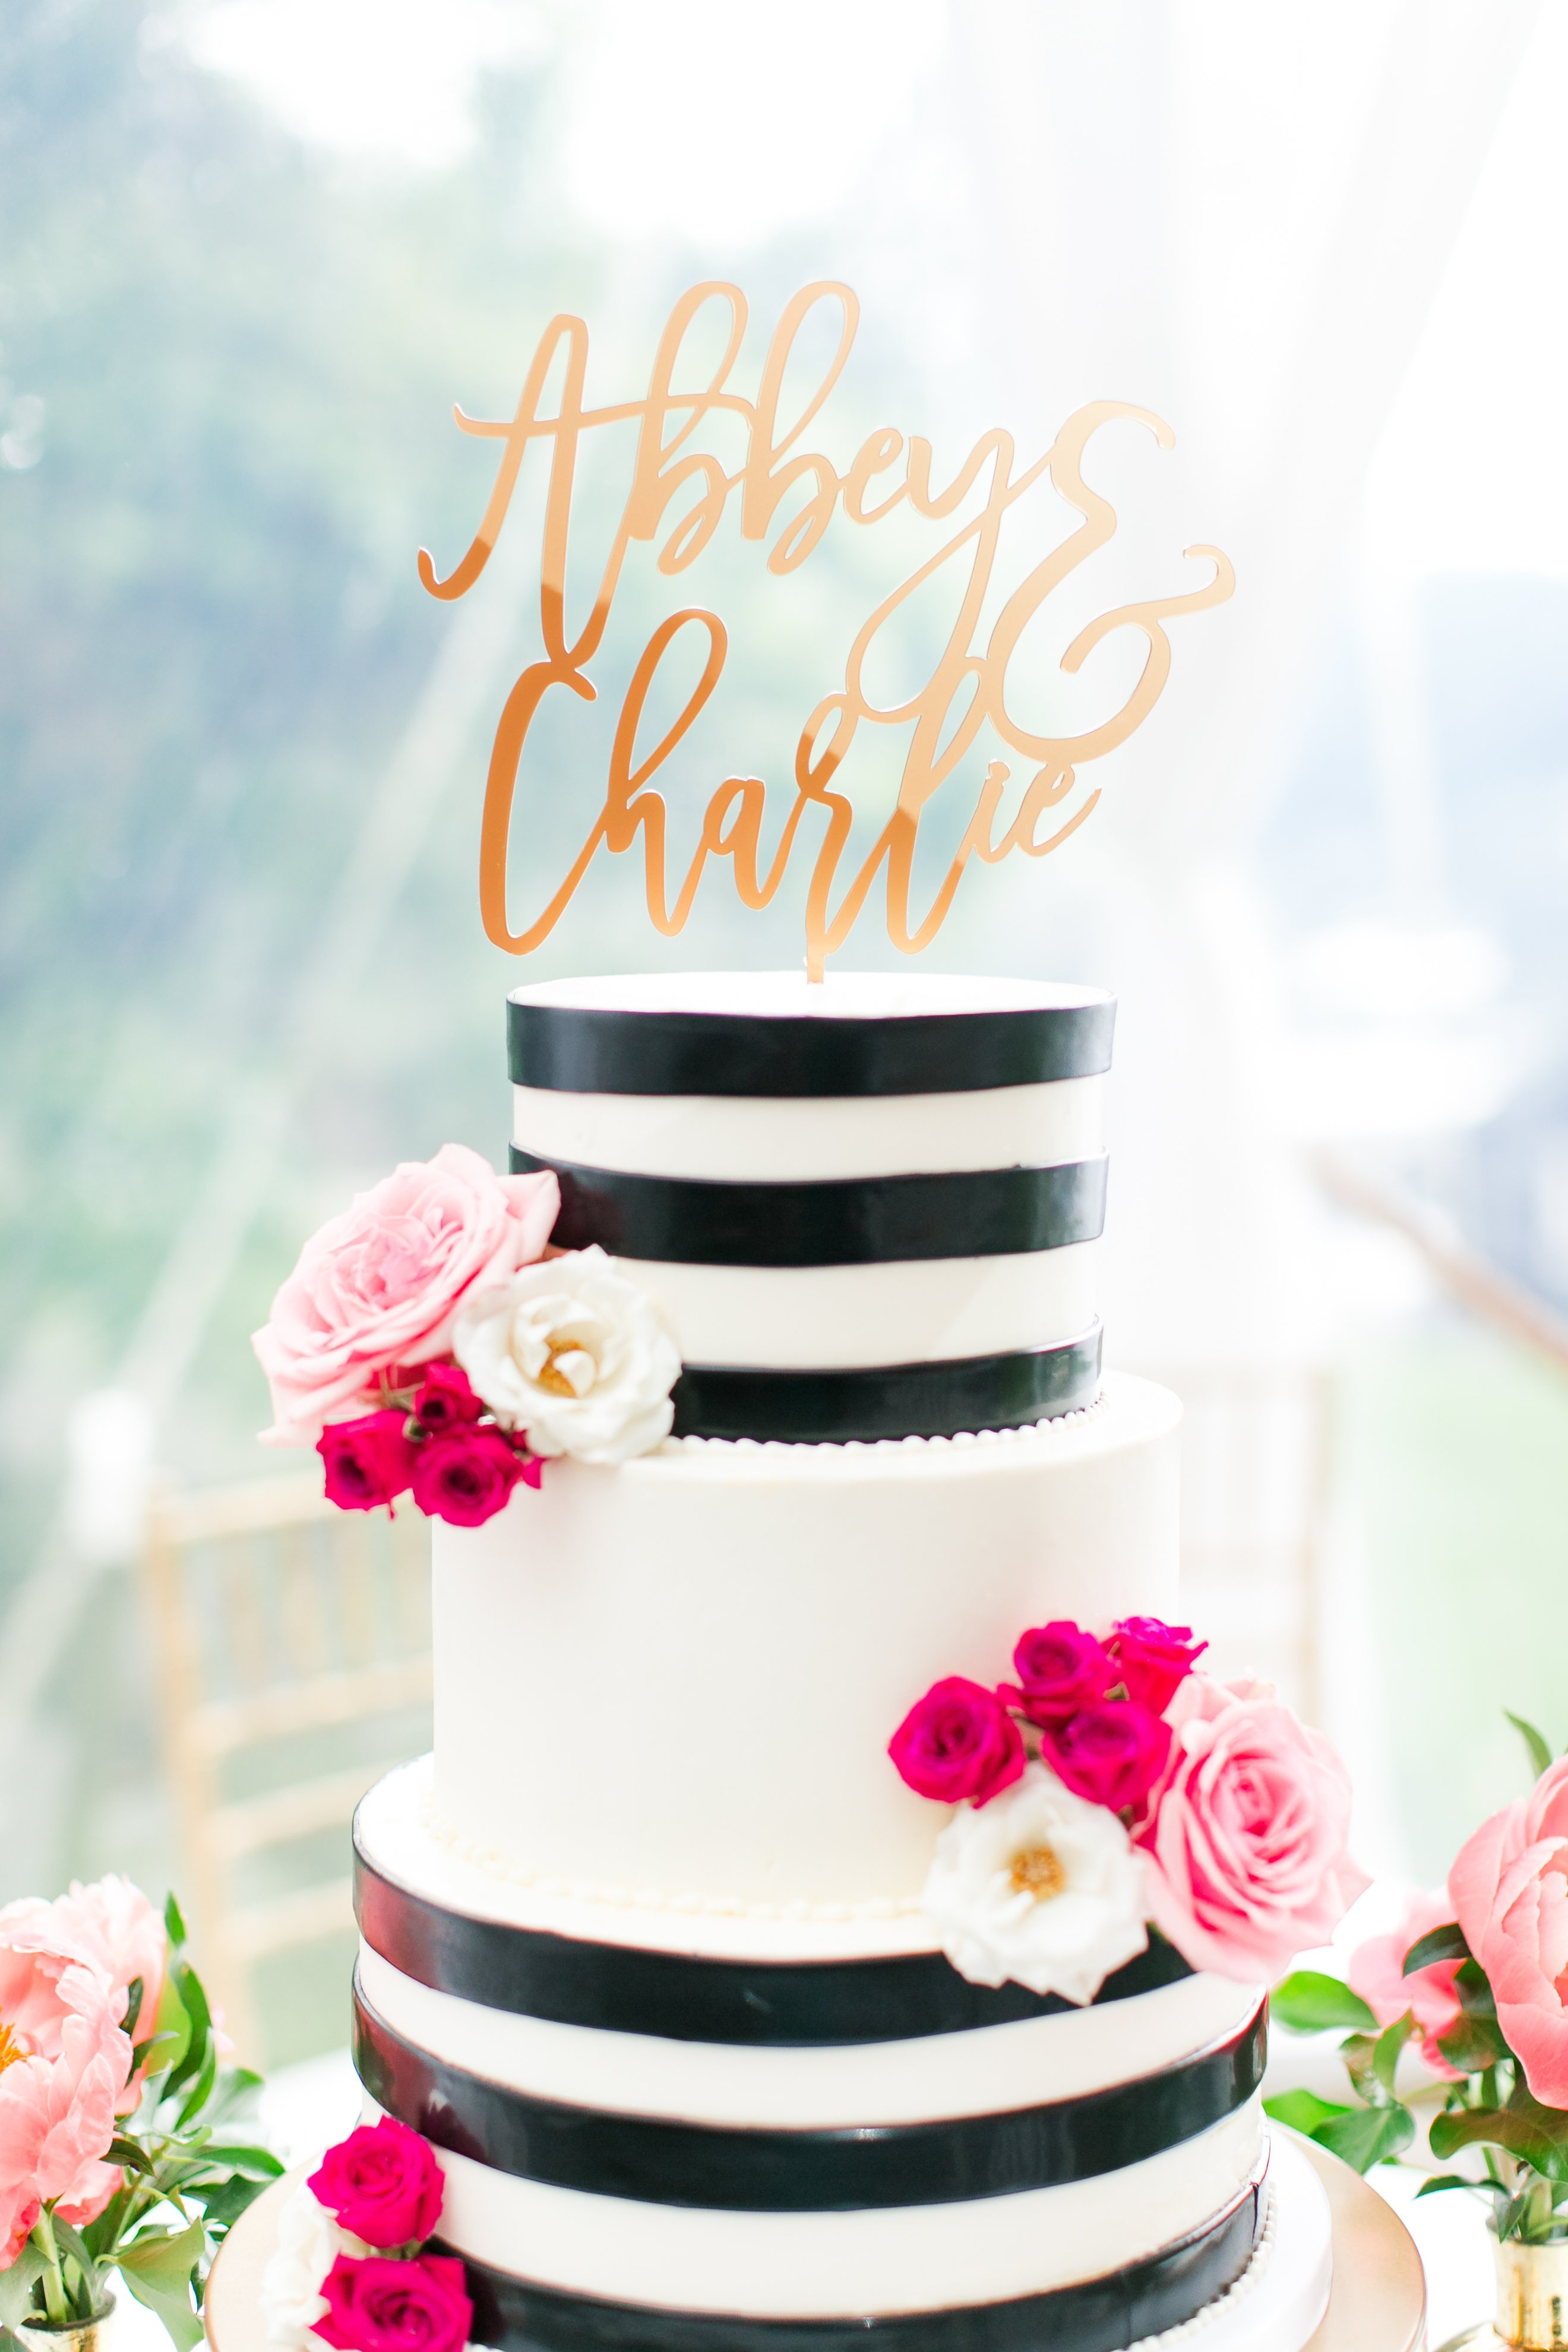 View More: https://kristimckeagphotography.pass.us/abbey-charlie-married